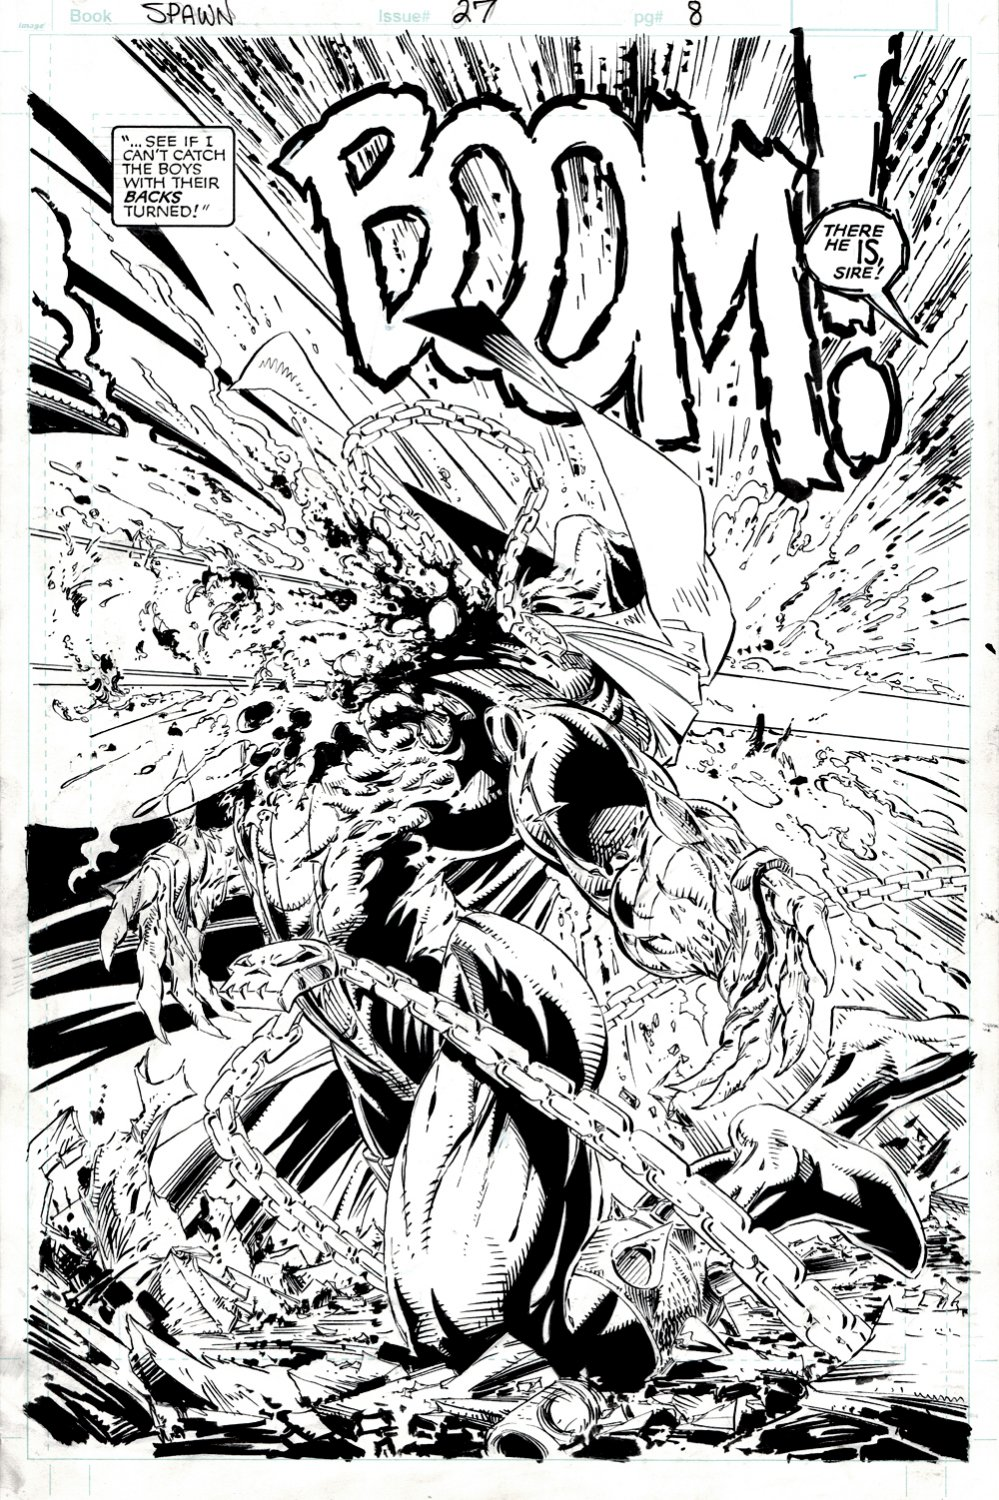 Spawn #27 p 8 SPLASH (FULL McFARLANE INKS! 1ST CURSE!) 1994